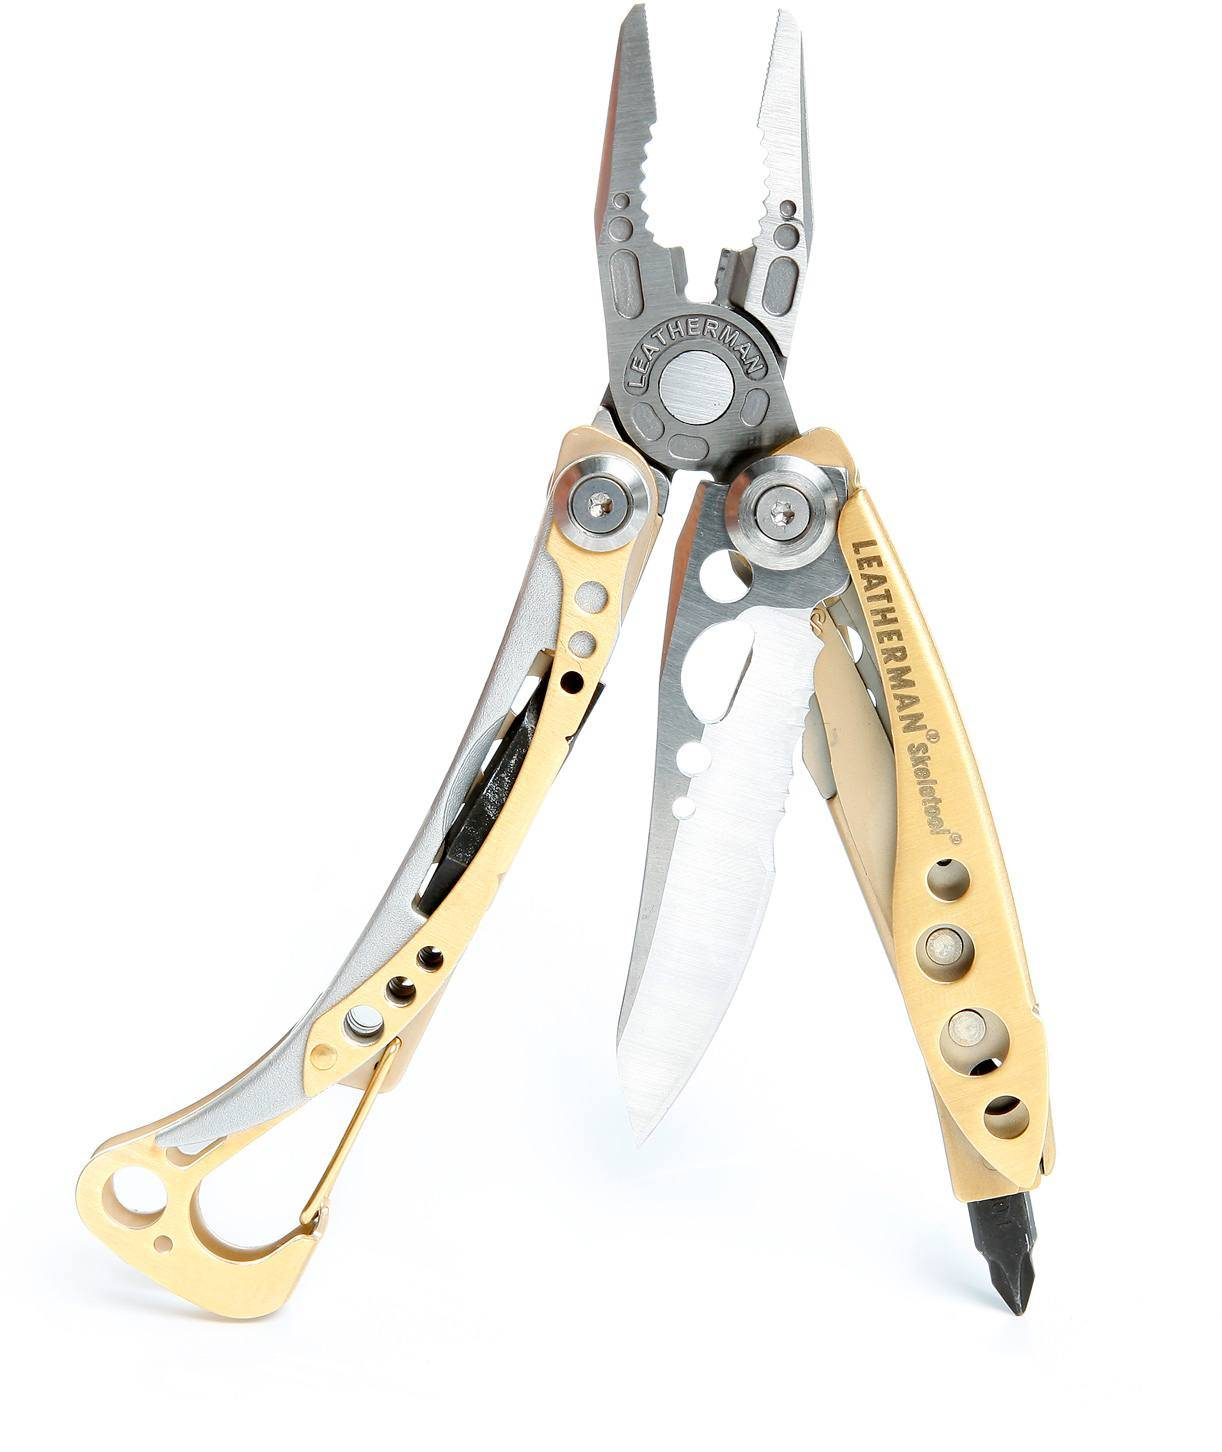 Leatherman Skeletool Kullattu